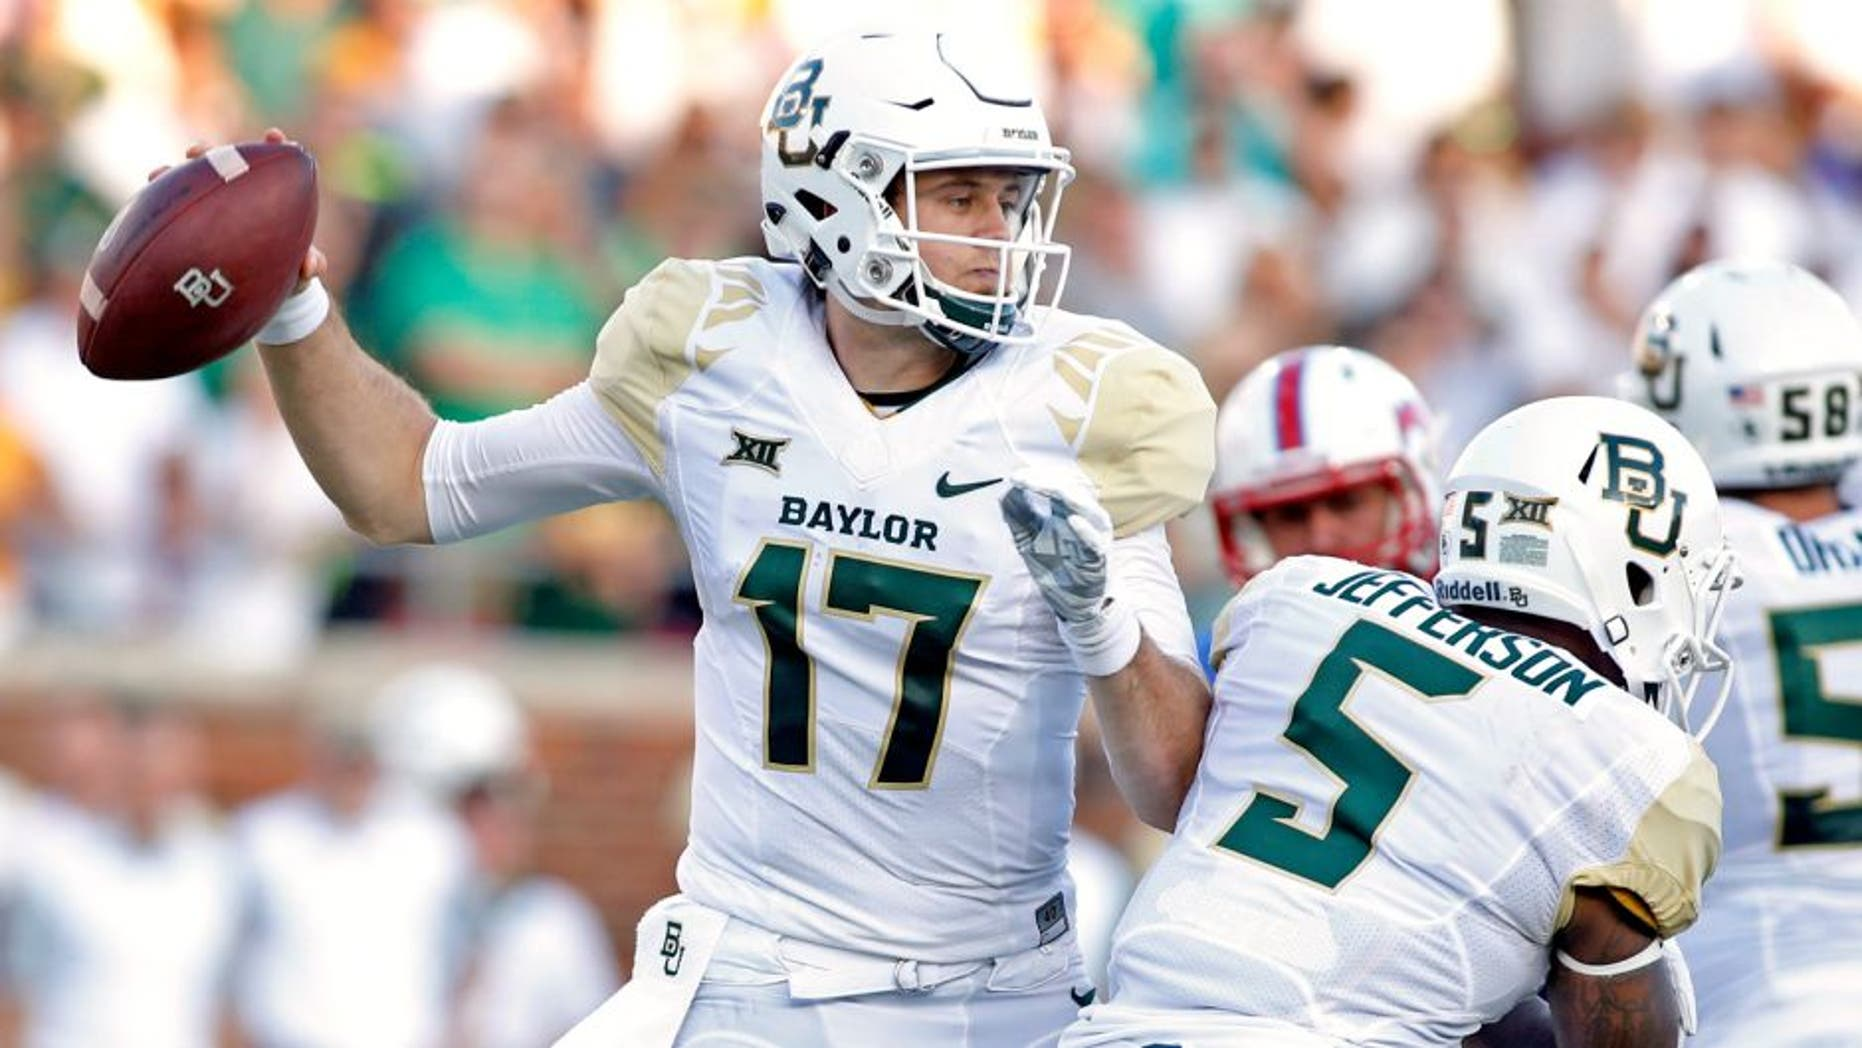 Sep 4, 2015; Dallas, TX, USA; Baylor Bears quarterback Seth Russell (17) throws a pass in the first quarter against the Southern Methodist Mustangs at Gerald J. Ford Stadium. Mandatory Credit: Tim Heitman-USA TODAY Sports